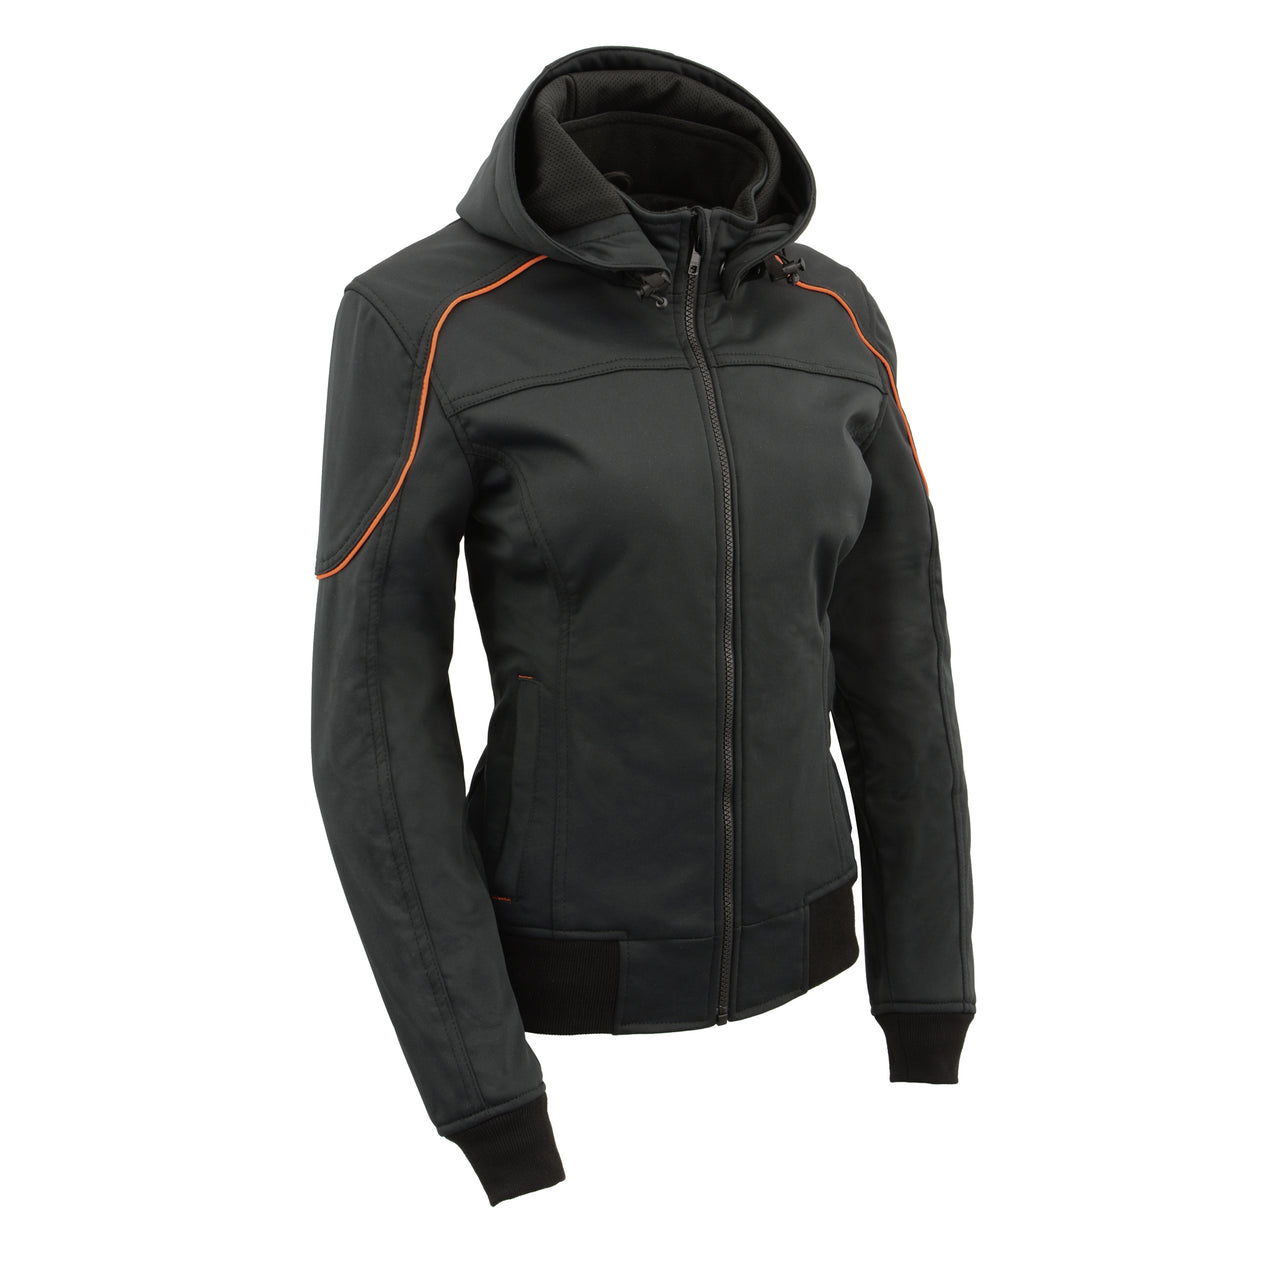 Women Soft Shell Armored Racing Style Jacket with Detachable Hood - HighwayLeather